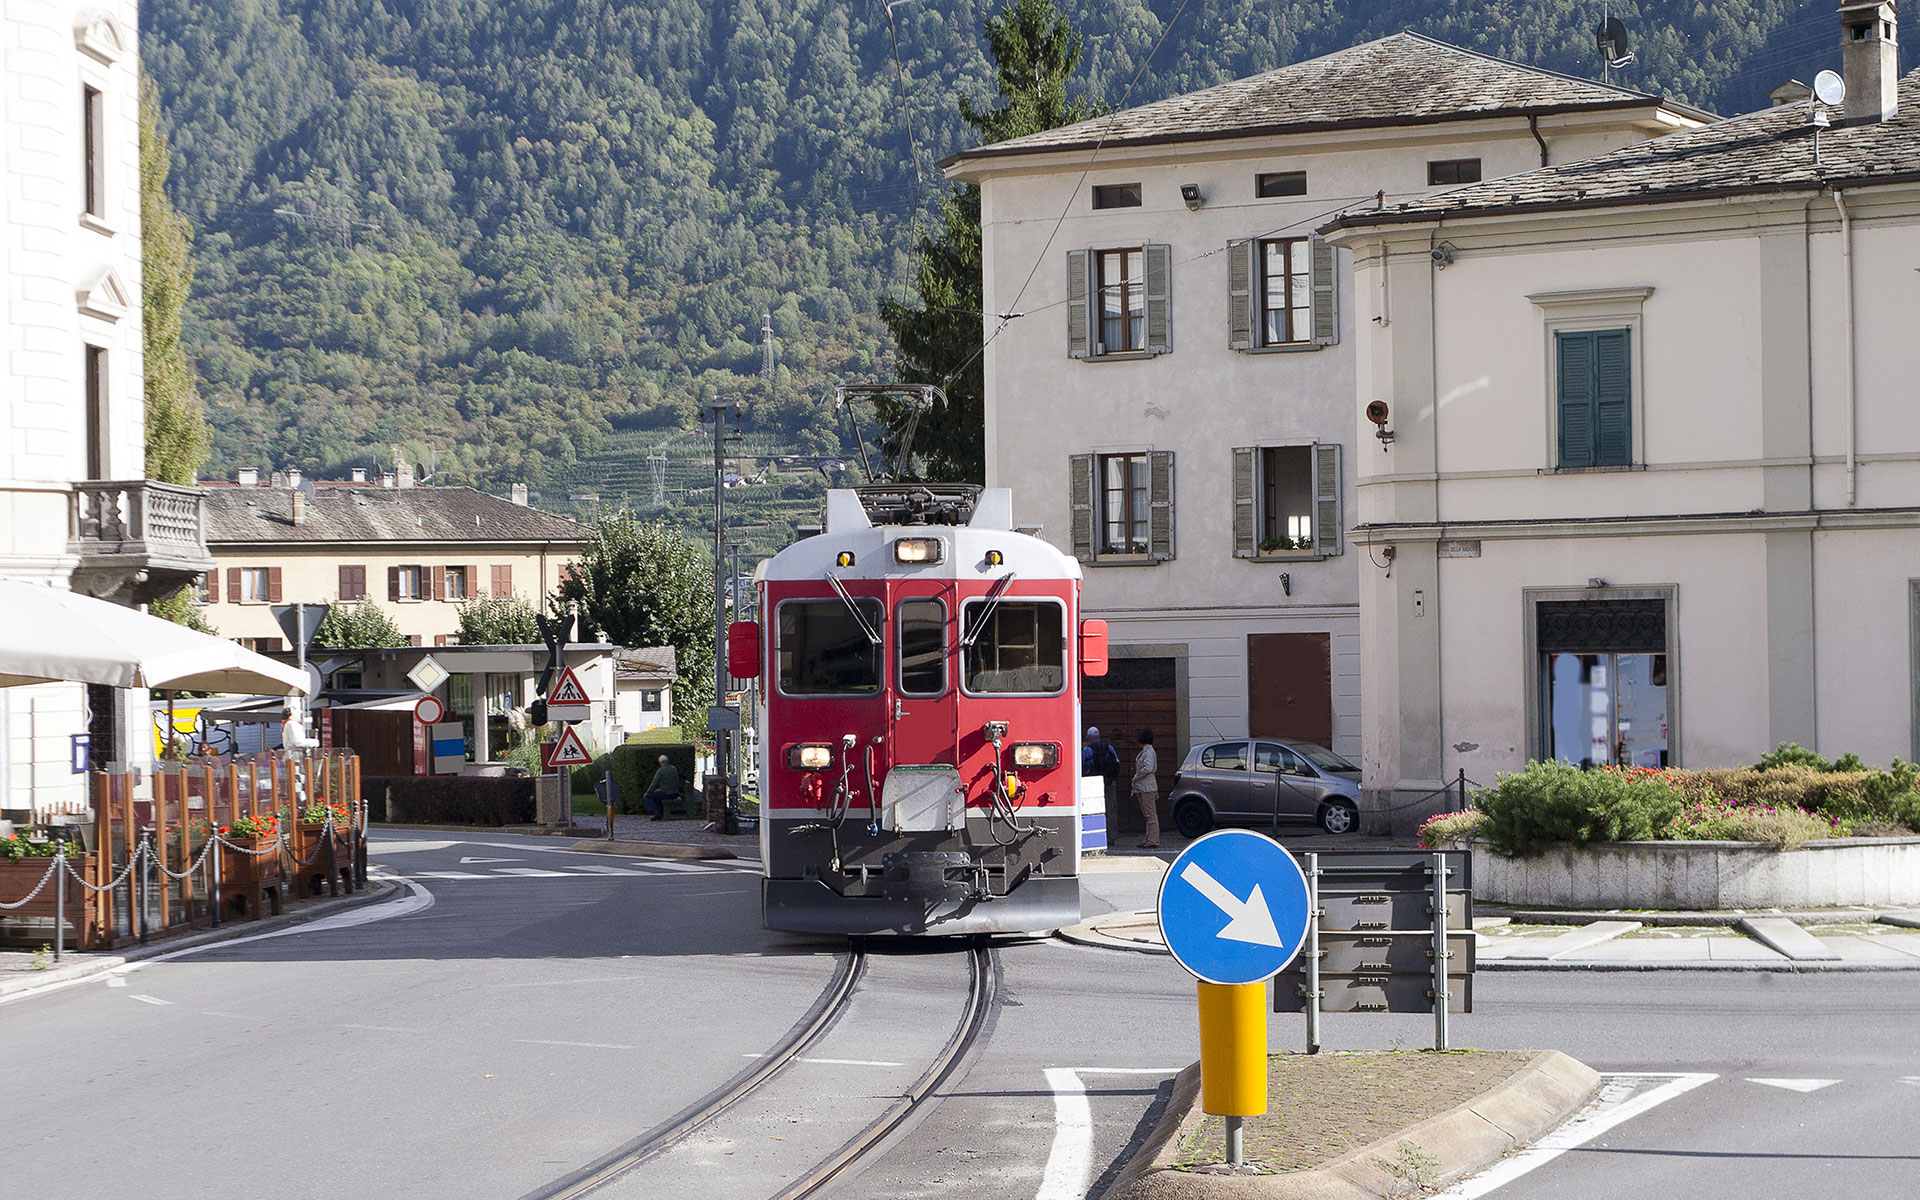 A Swiss train on the Bernina route arrives in Tirano. The railway actually threads through the streets of the Italian town (photo © Janis Smits / dreamstime.com)